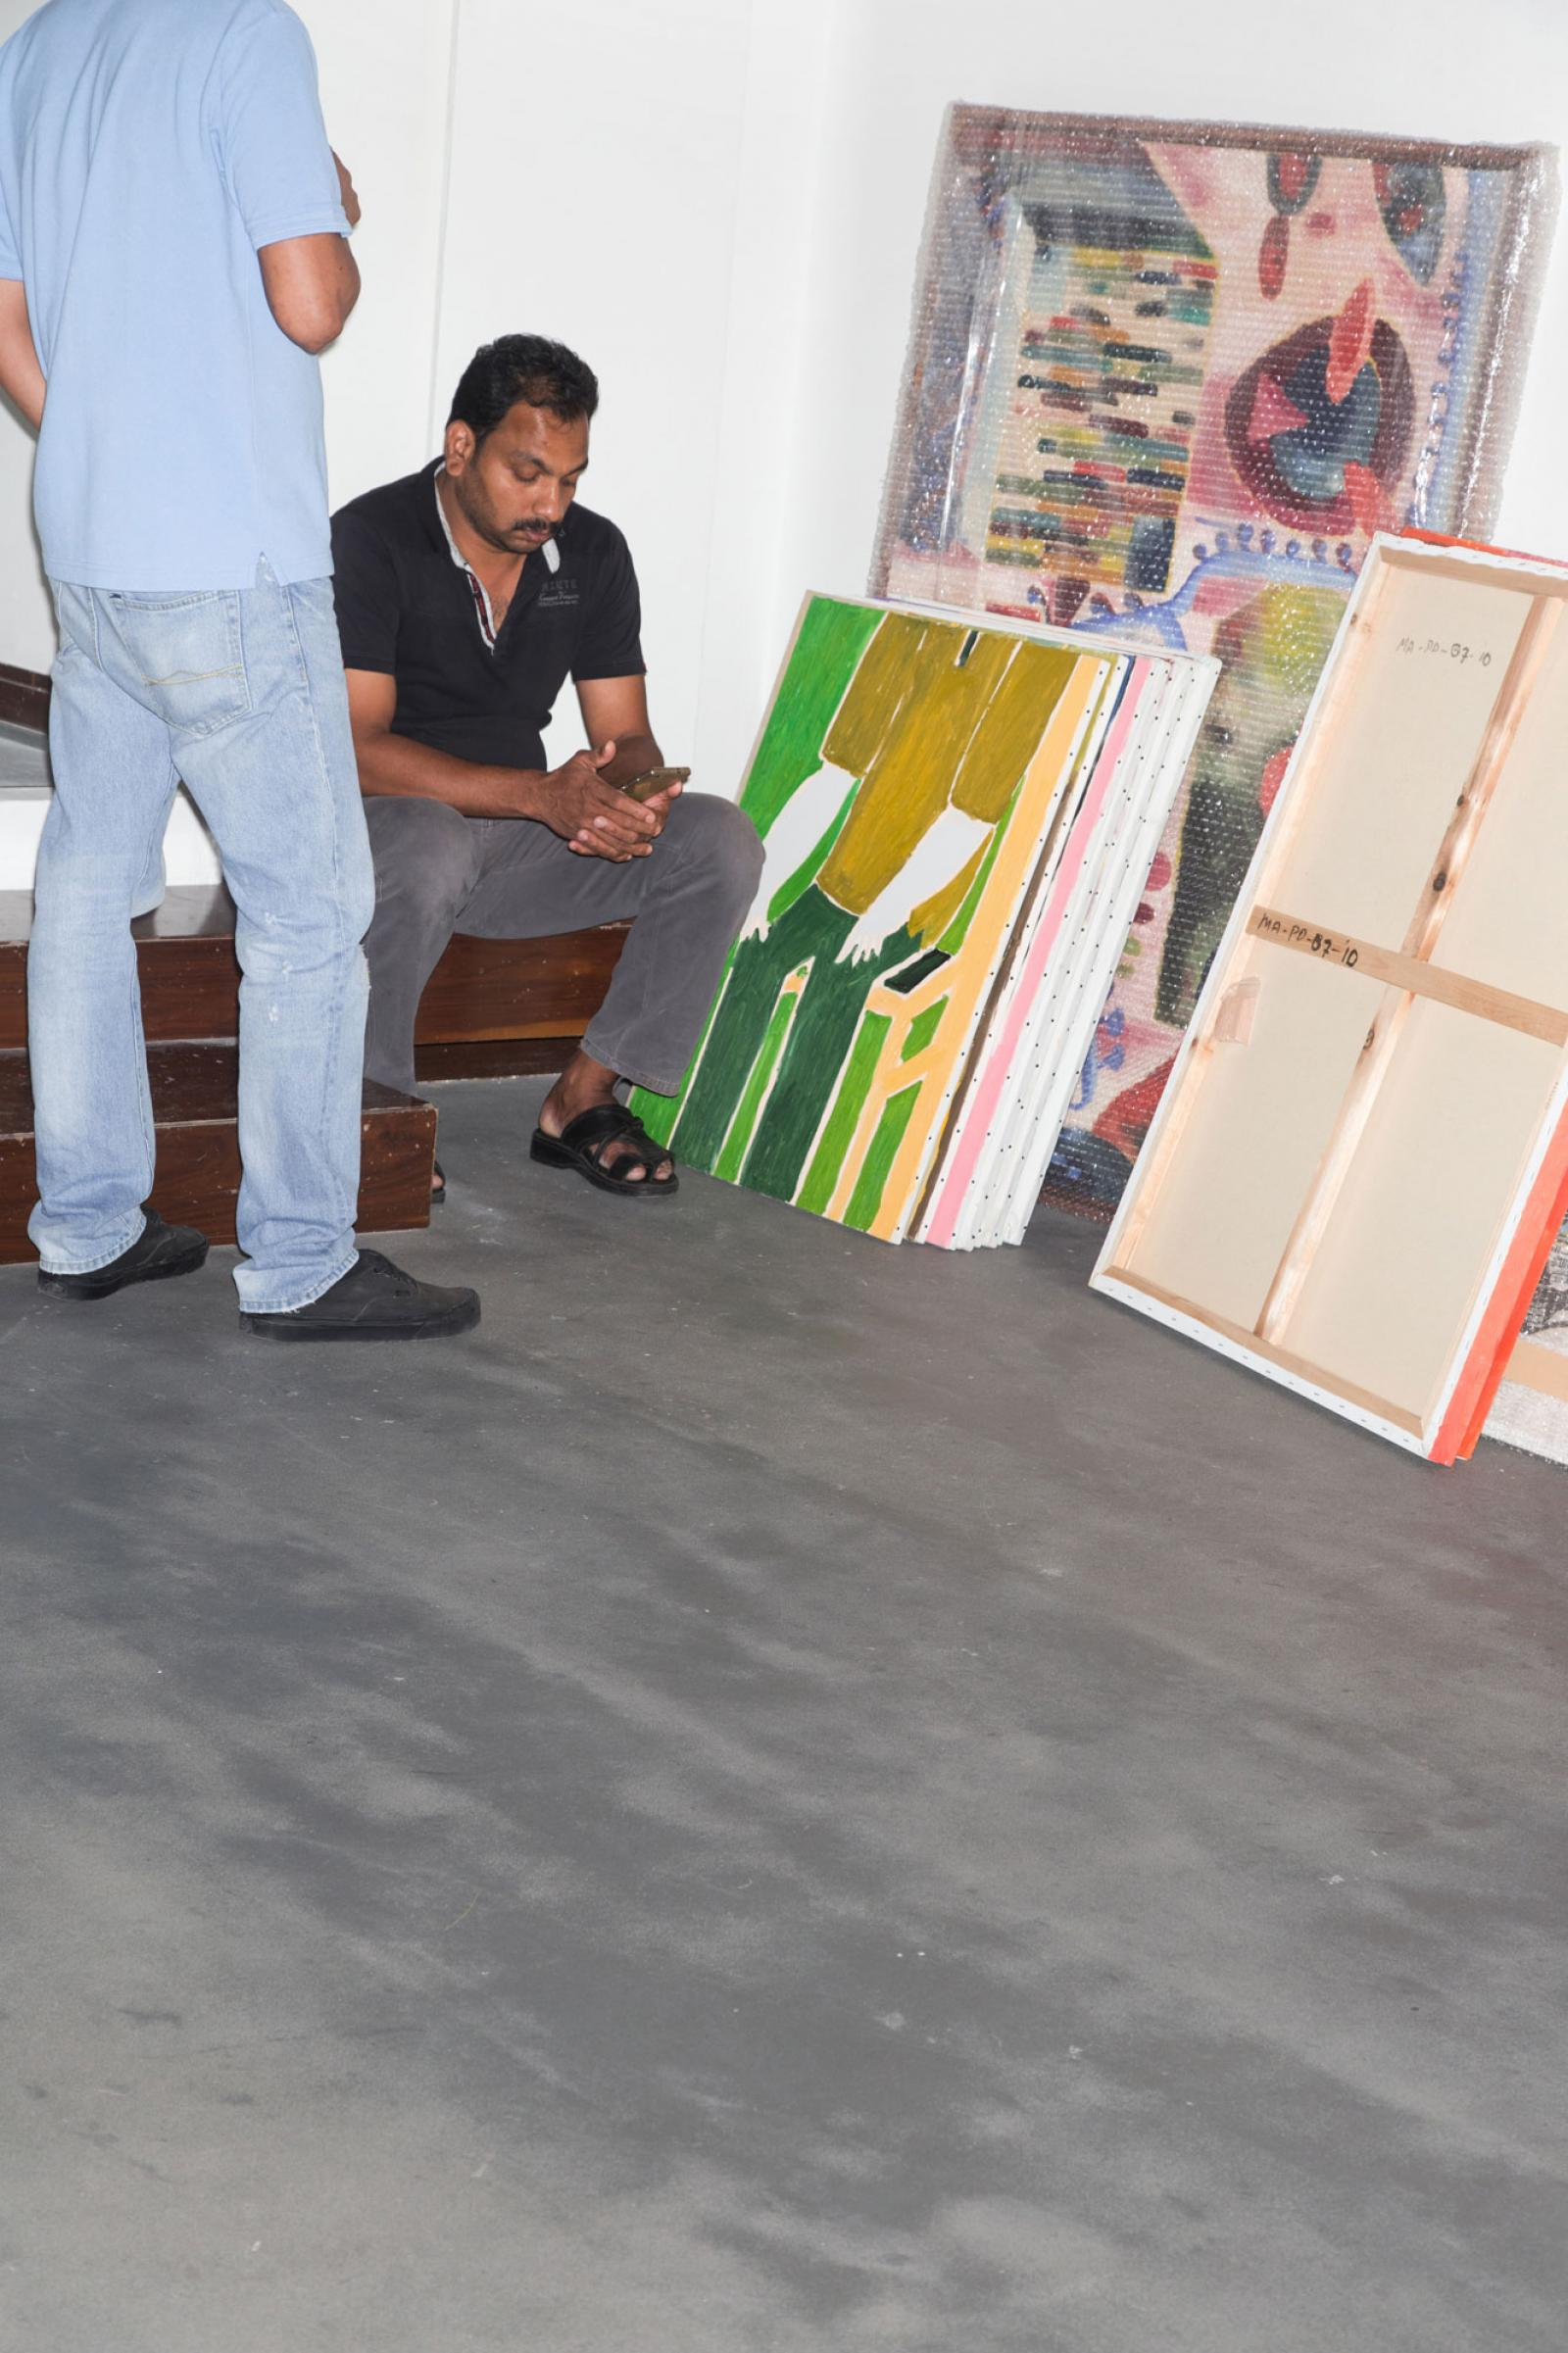 Installing Mohammed Ahmed Ibrahim's exhibition /Primordial II/ at Cuadro  gallery